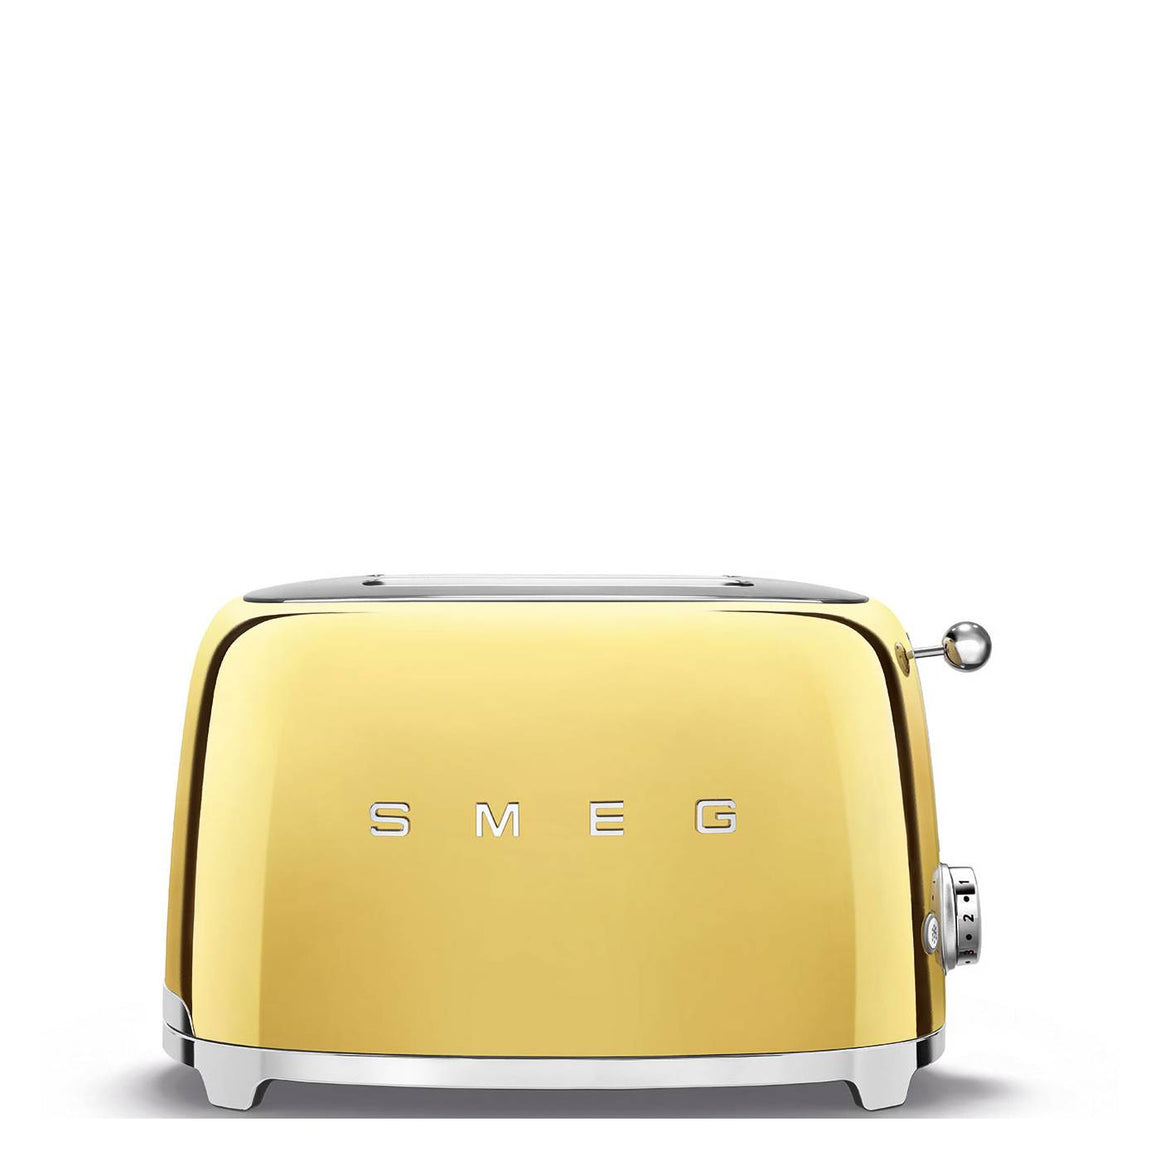 50s RETRO 2 SLICE TOASTER